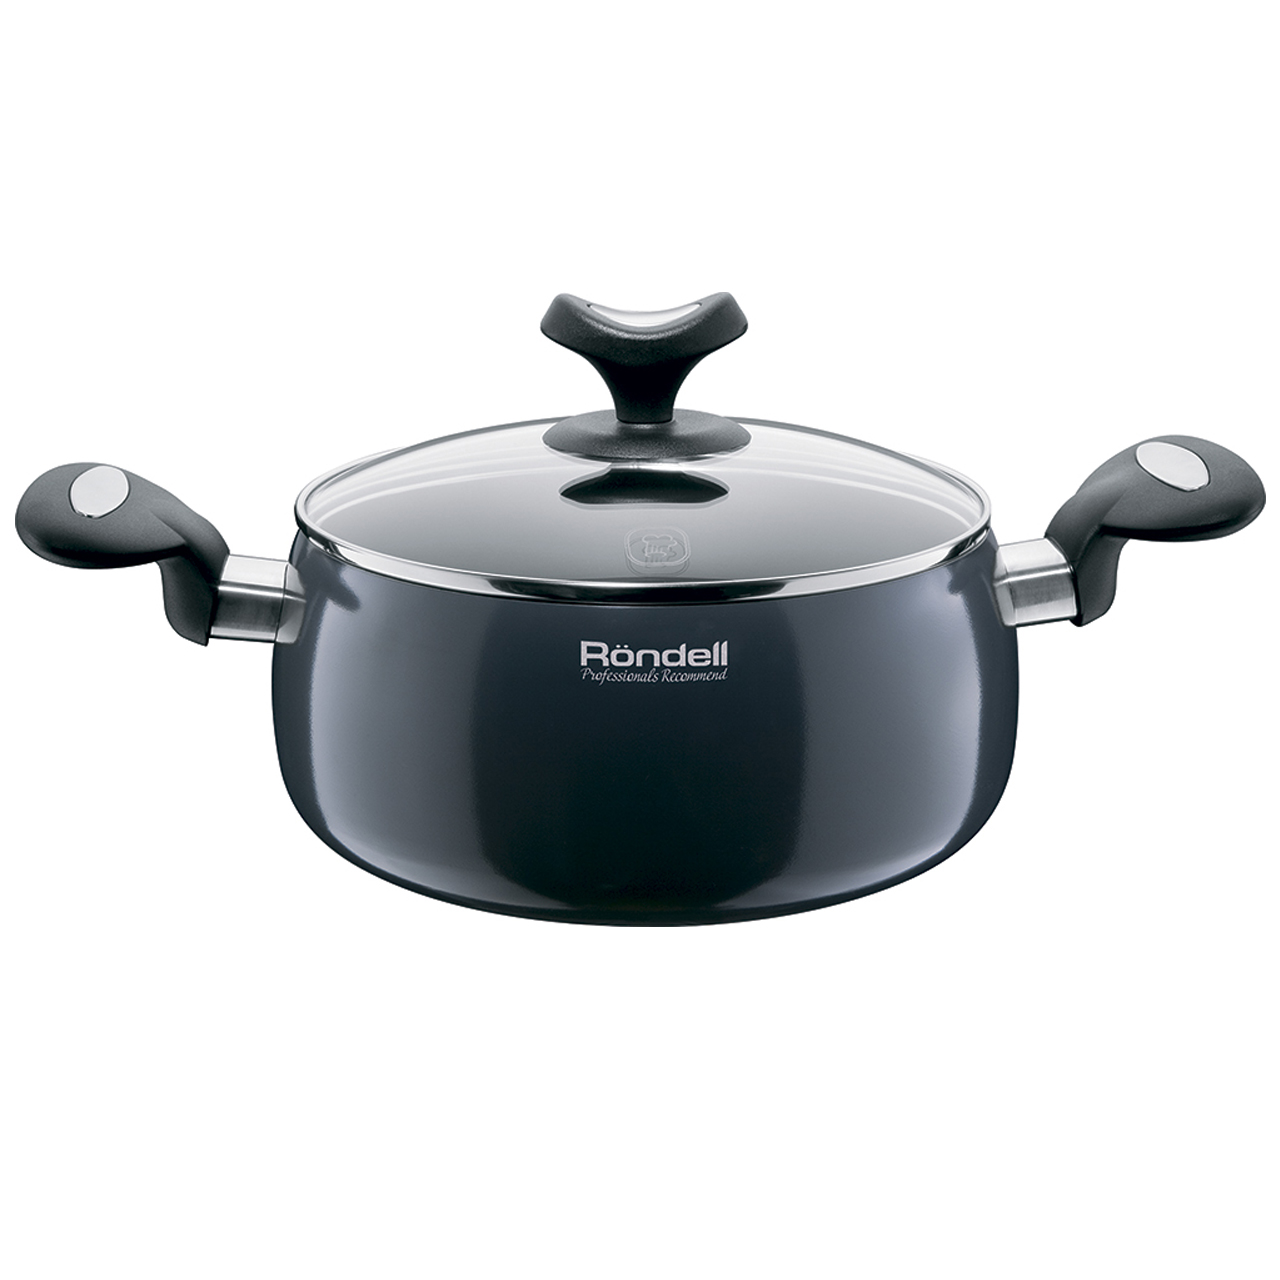 Casserole with lid Rondell Delice 24 cm (5,1 L) RDA-078 rondell кастрюля rondell delice rda 078 5 1 л m 0s d5jr